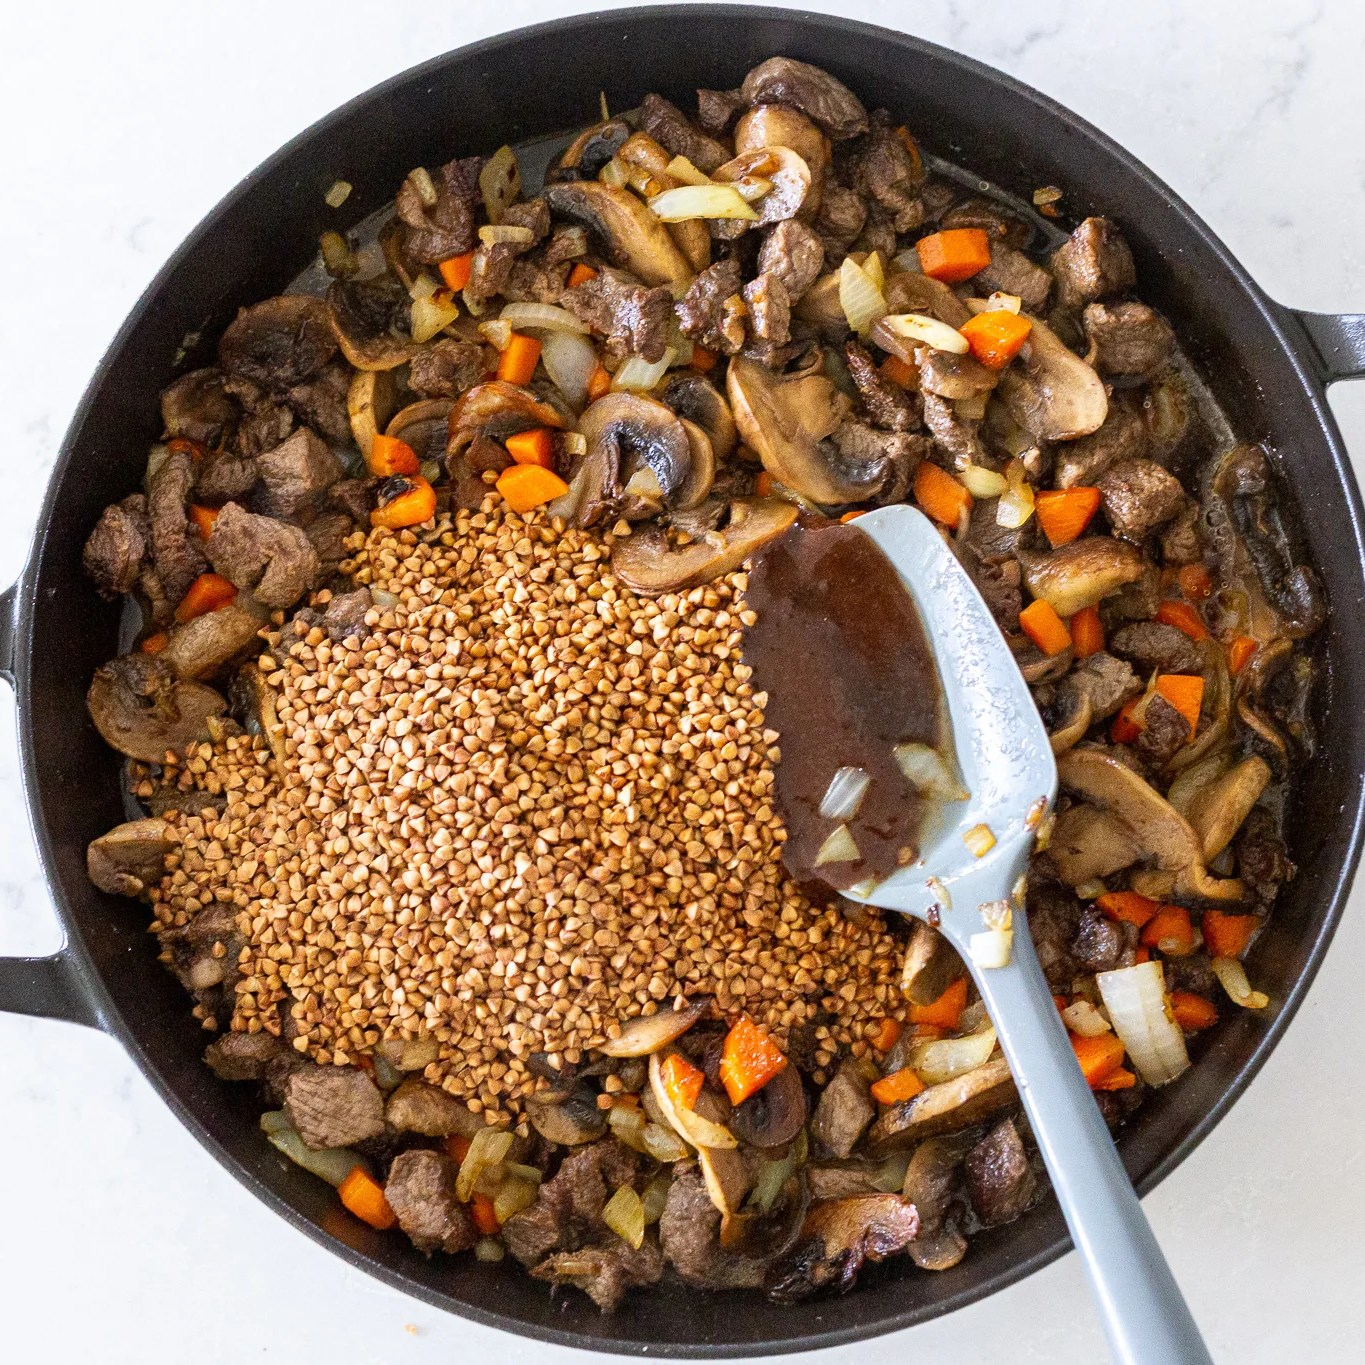 buckwheat added to the ingredients in a pan